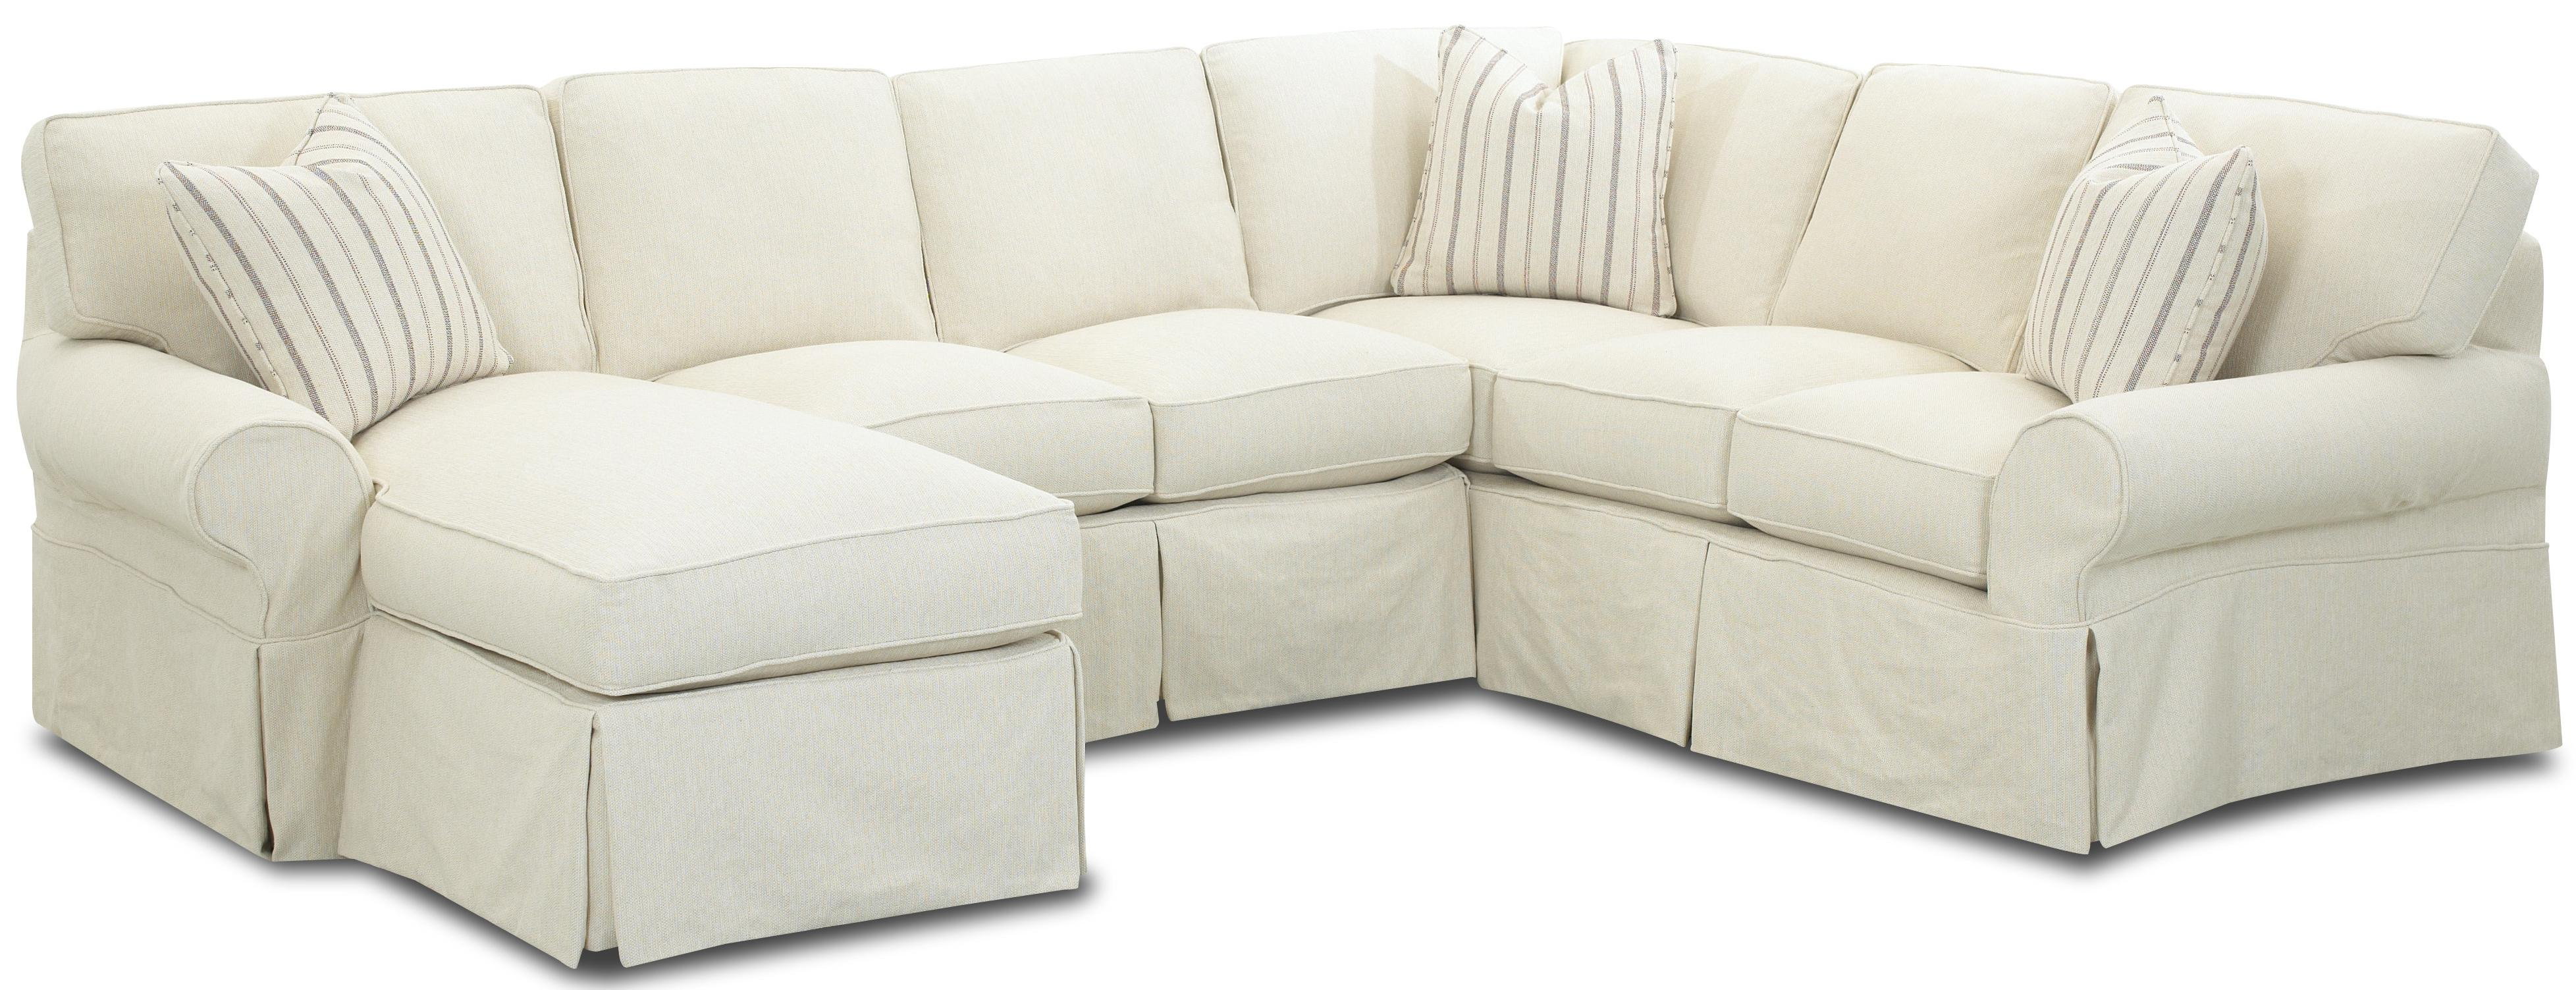 Slipcovered Sectional Sofa with Left Chaise by Klaussner